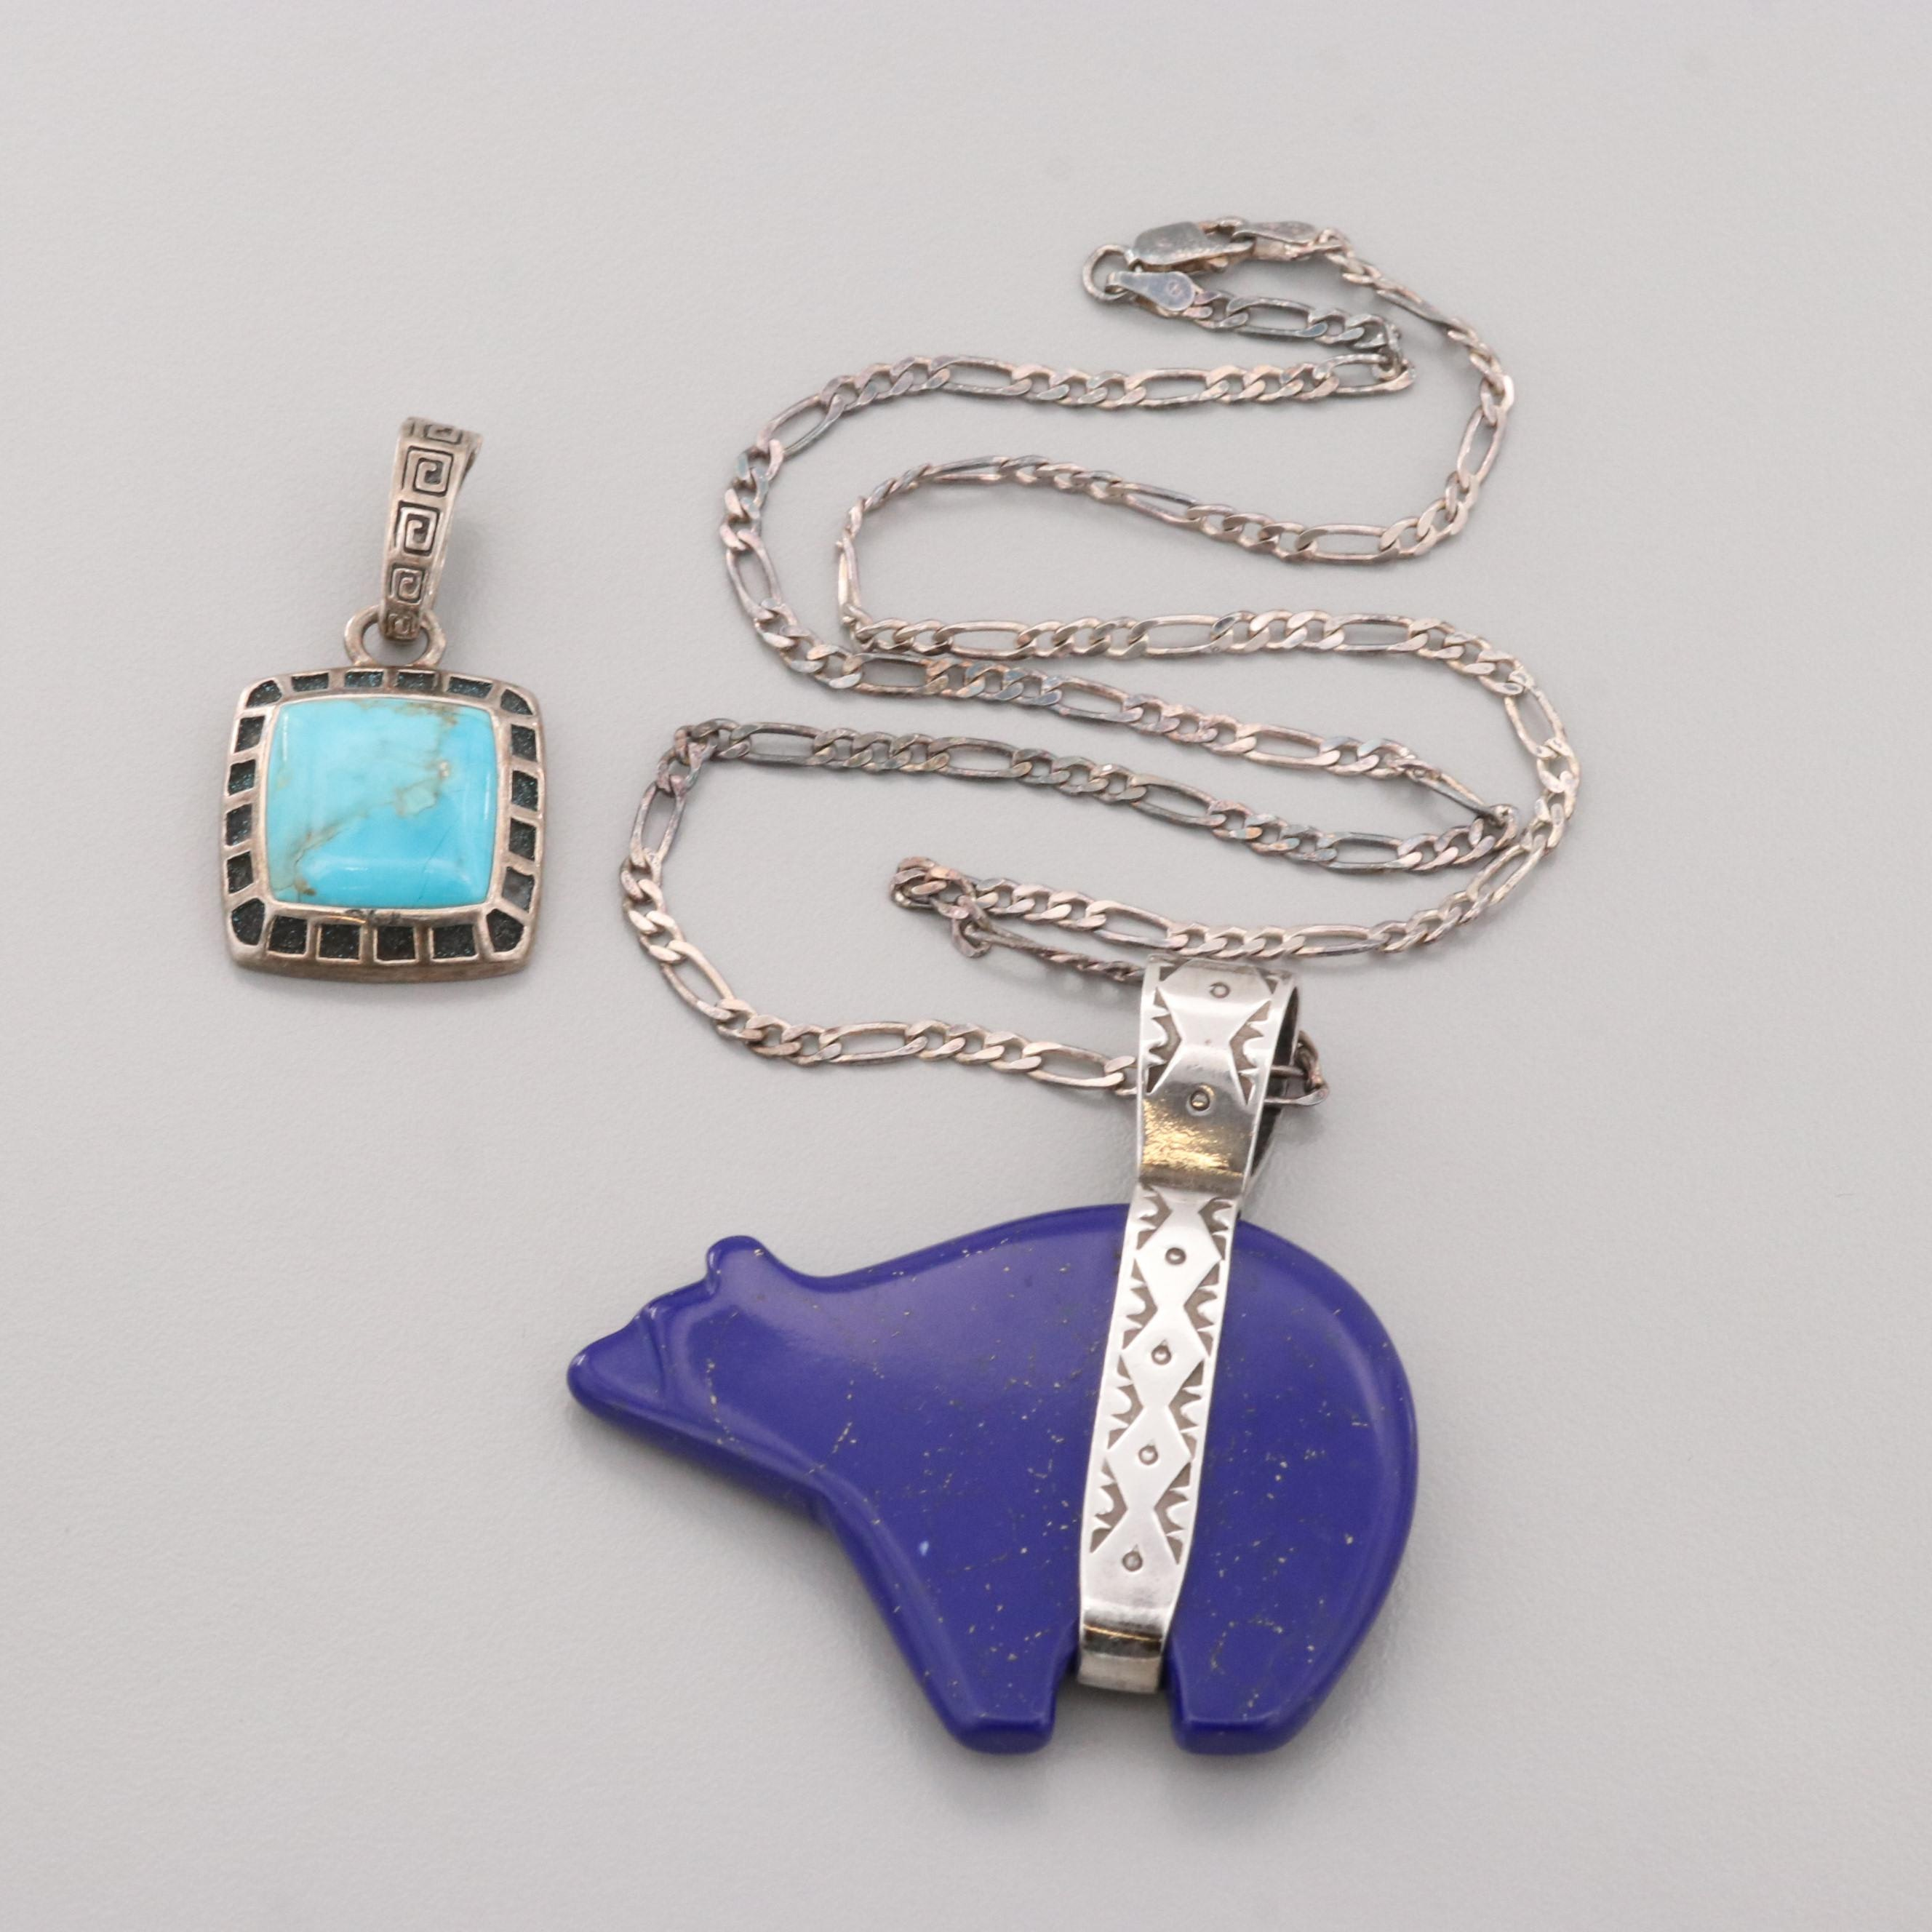 Pollack and Barse Sterling Imitation Lapis and Stabilized Turquoise Pendants